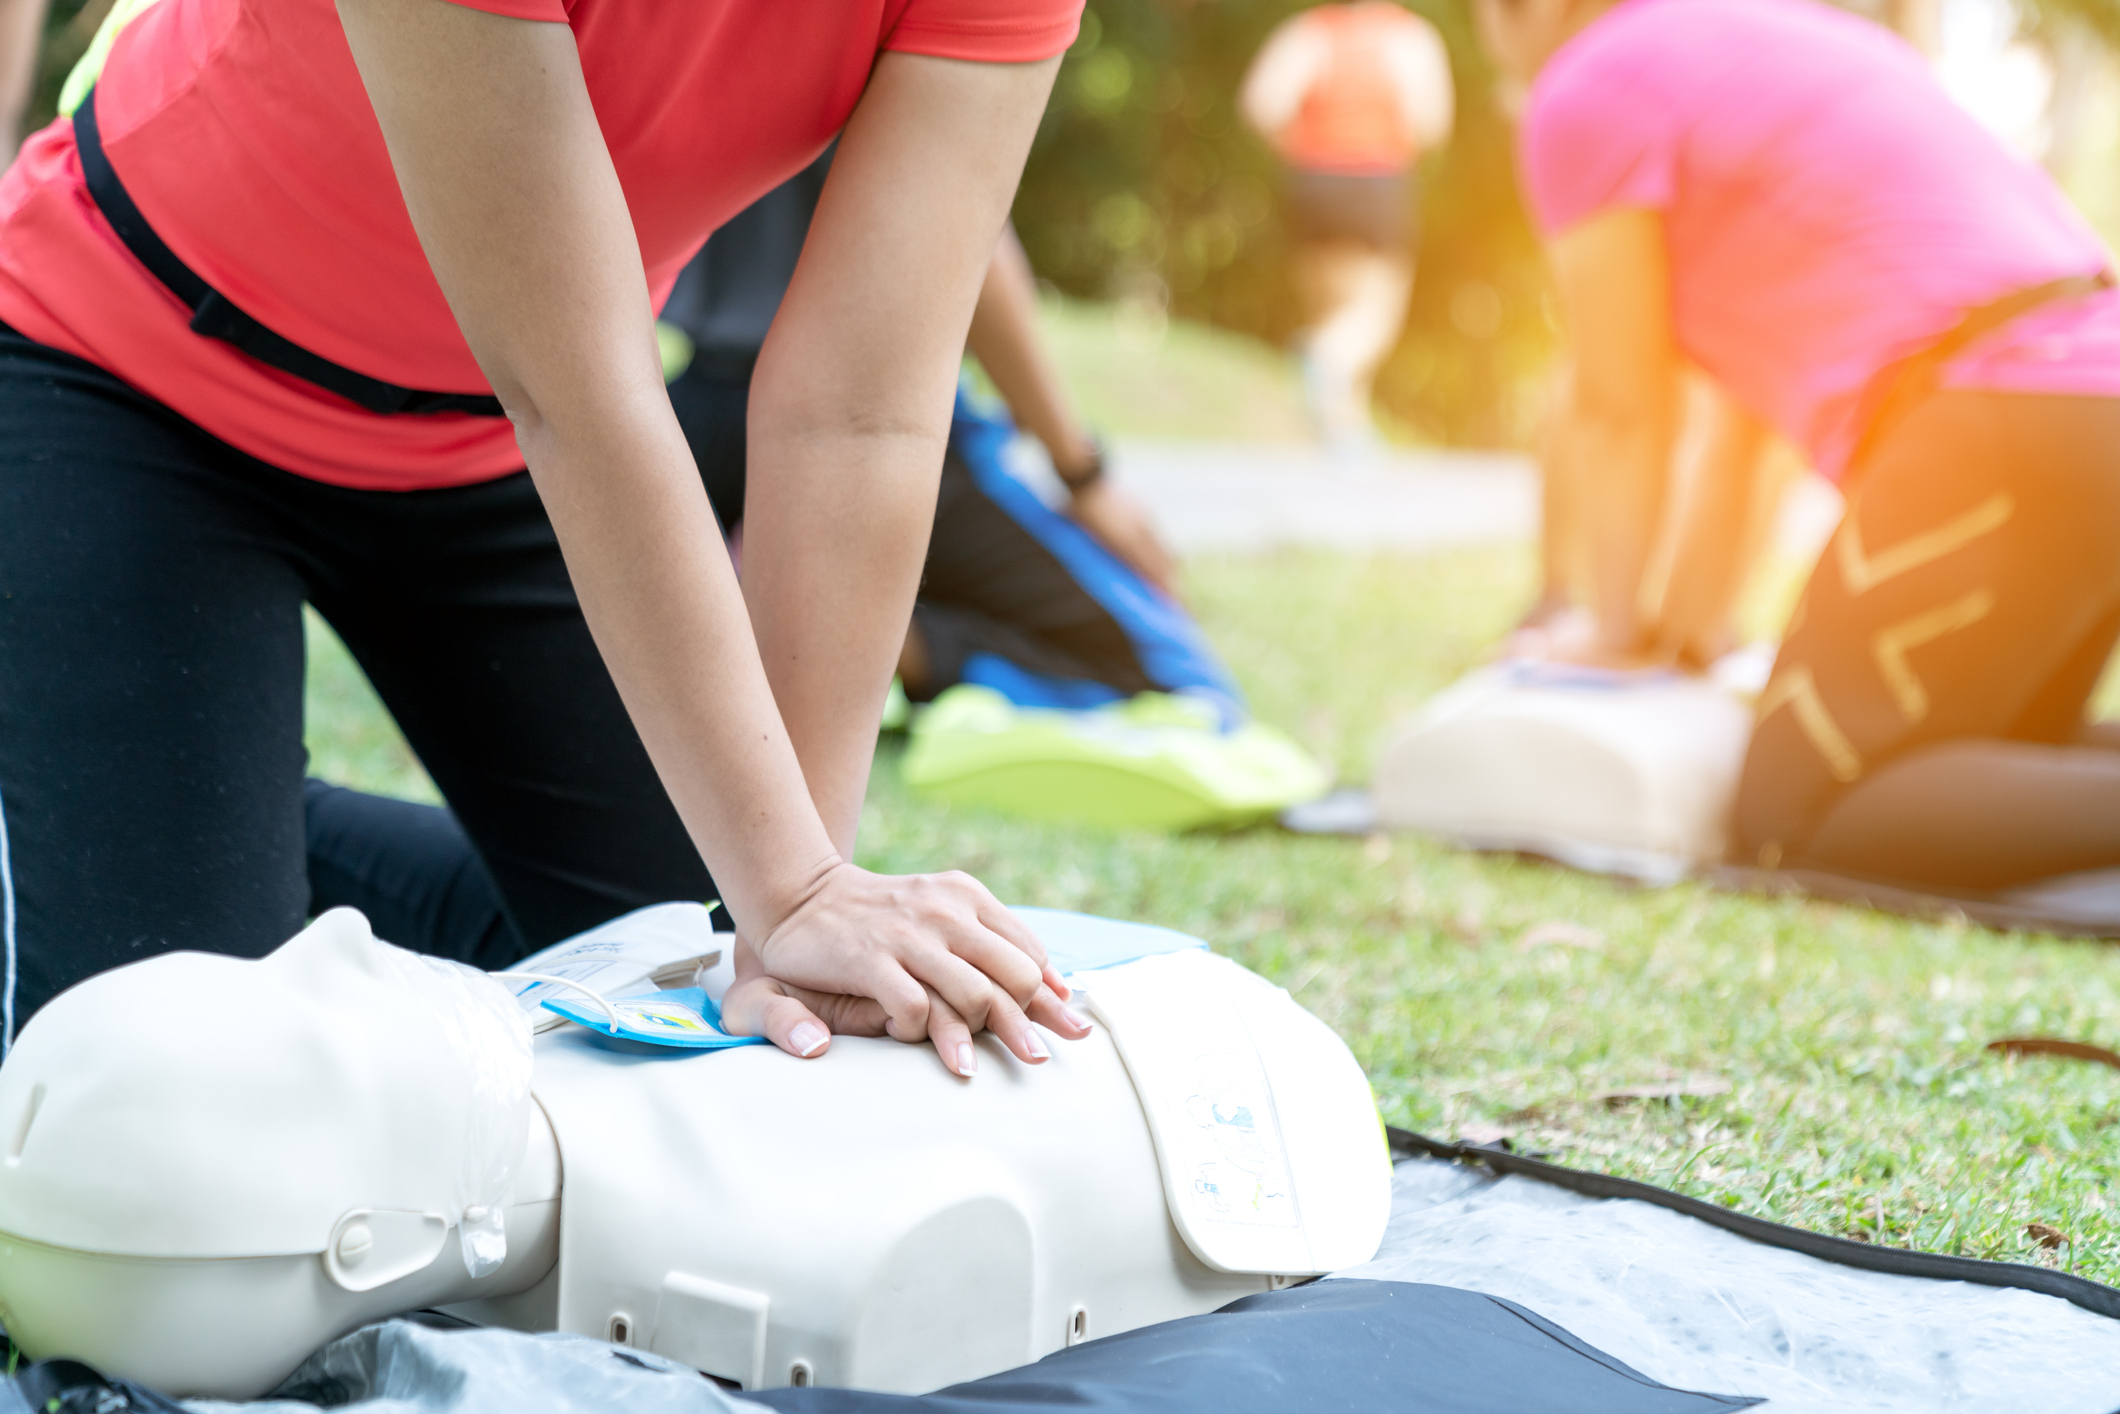 CPR guidelines